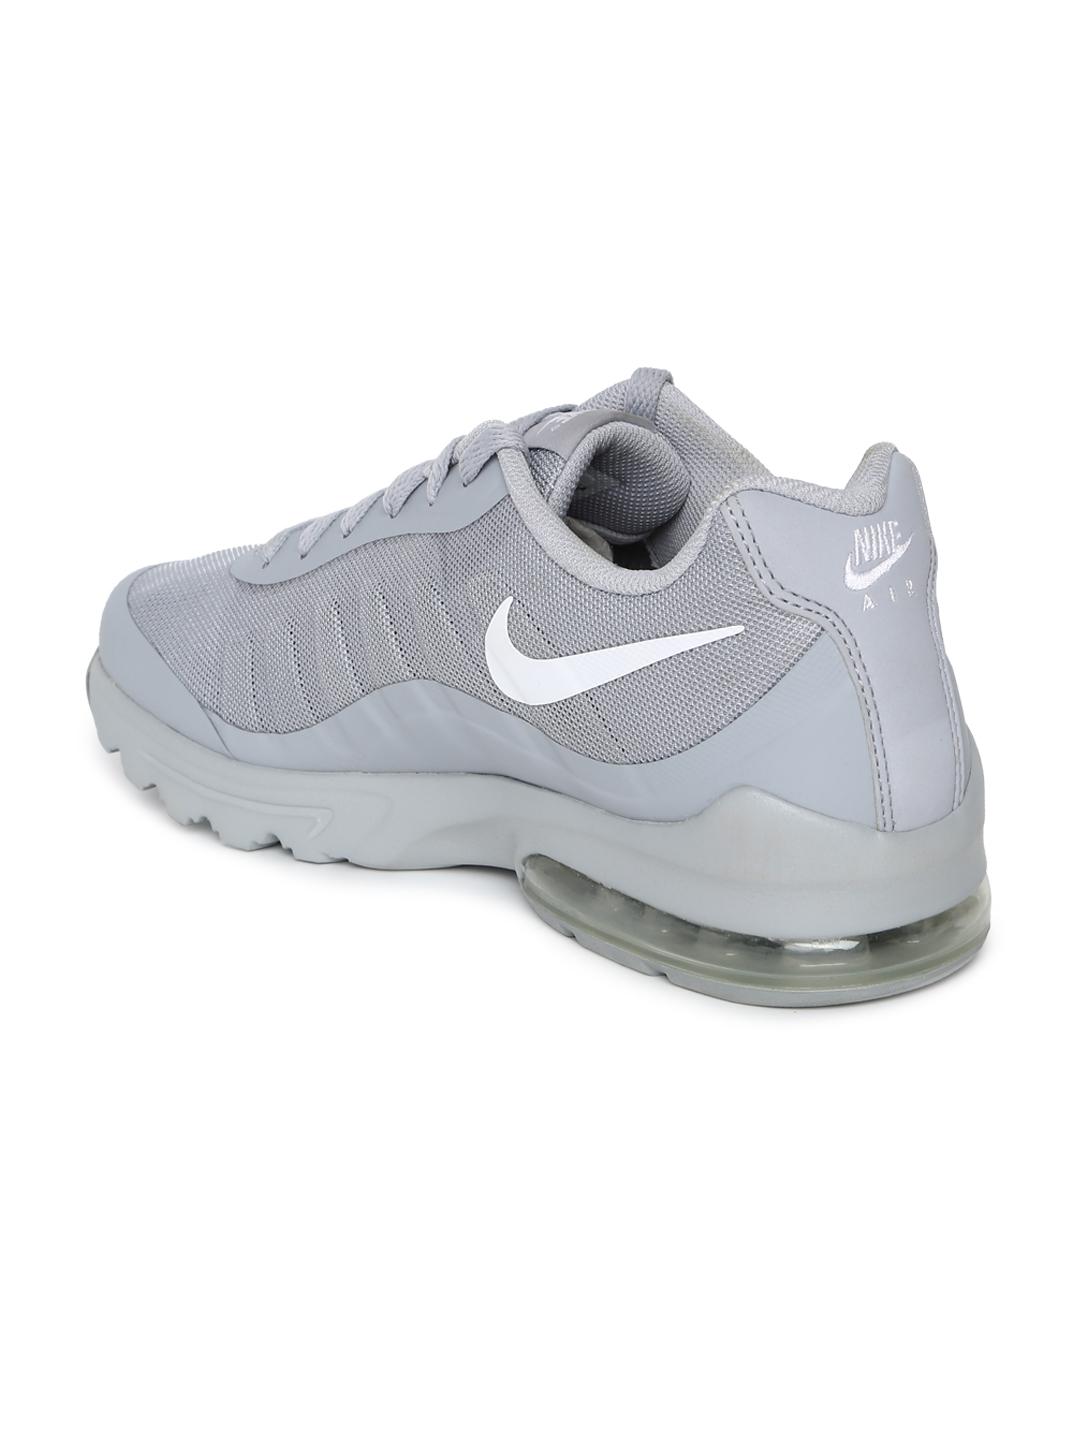 Buy Nike Men Grey Air Max Invigor Running Shoes - Sports Shoes for ... c99db1f66cf